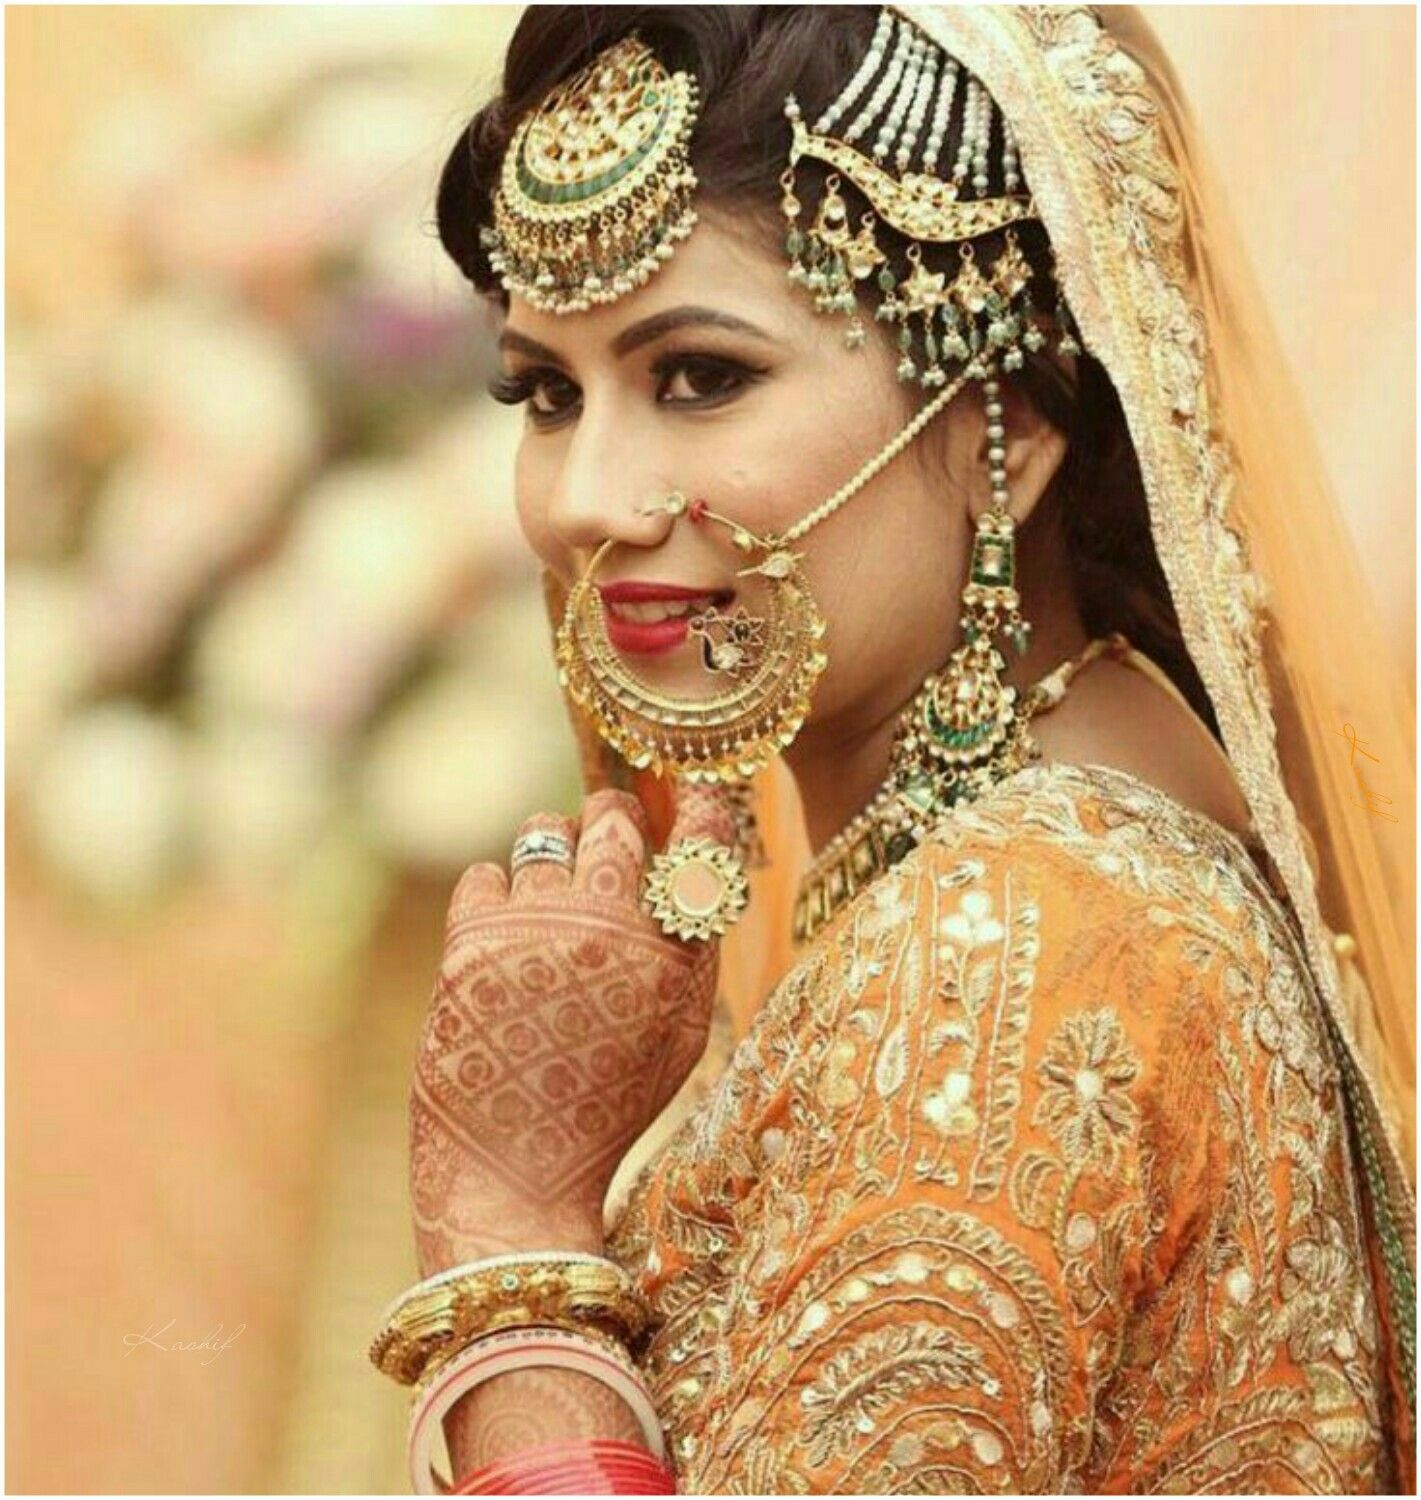 Pin by Syed Kashif on beautiful Brides